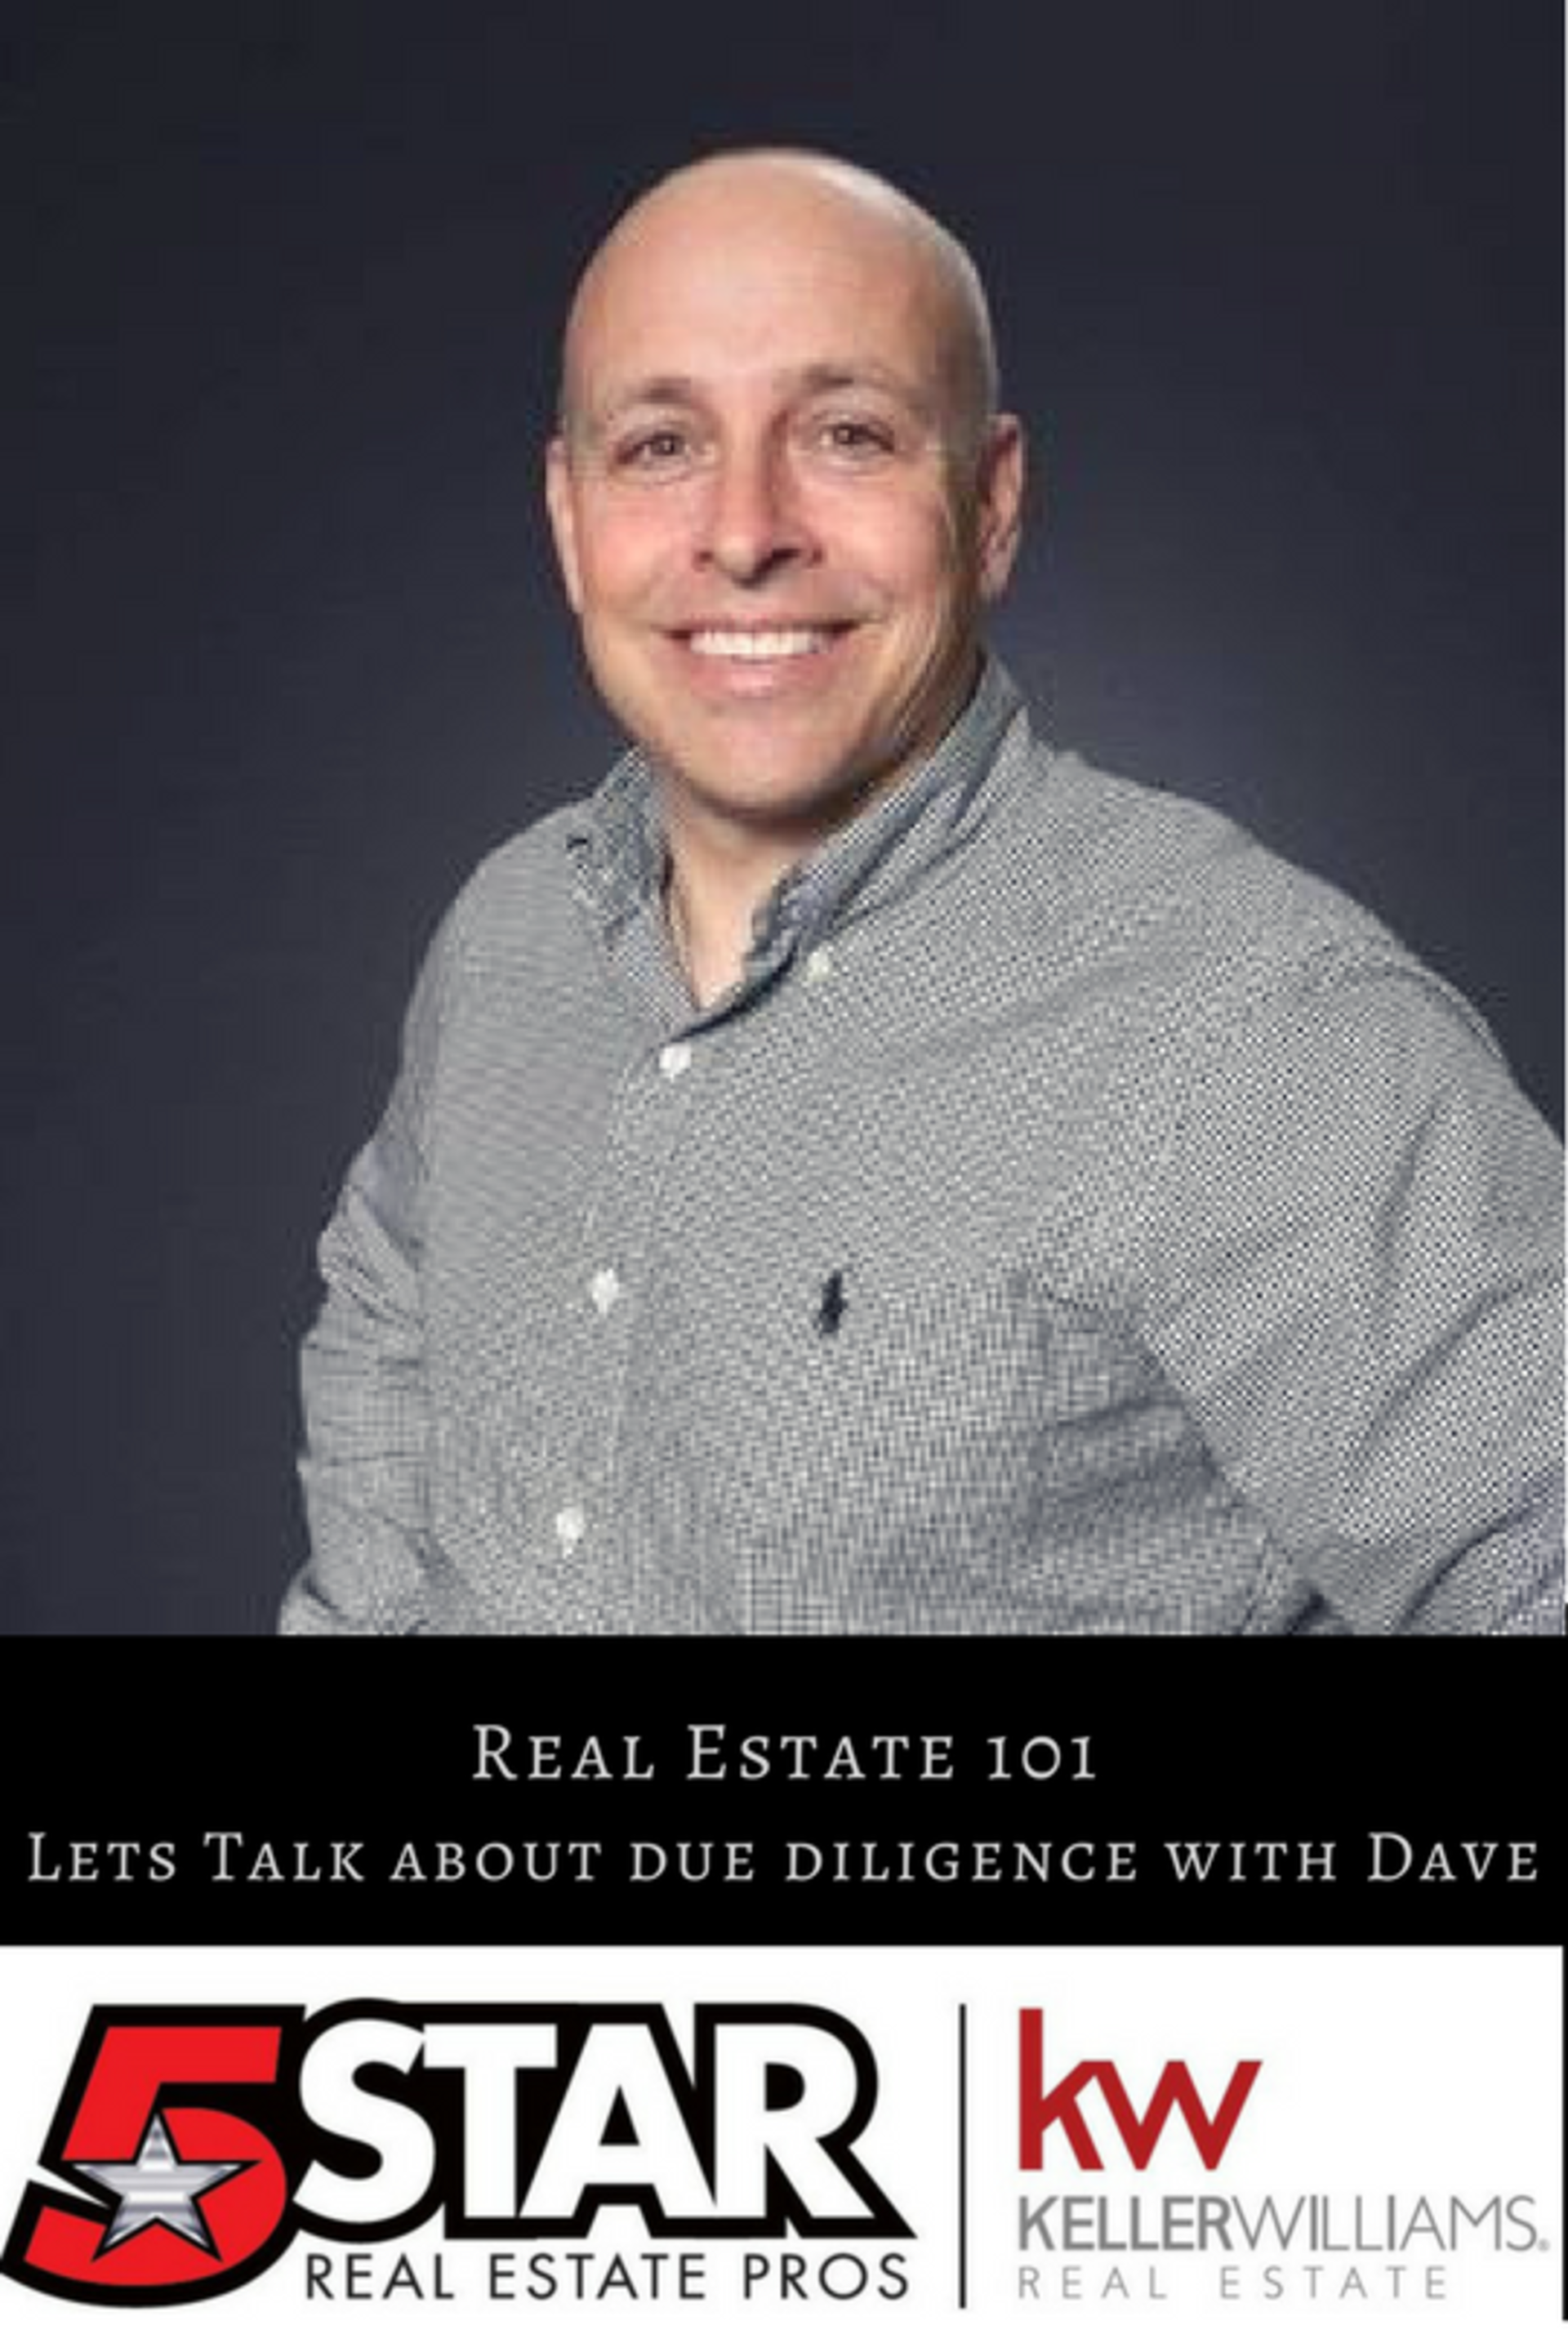 Let's talk about due diligence with Dave